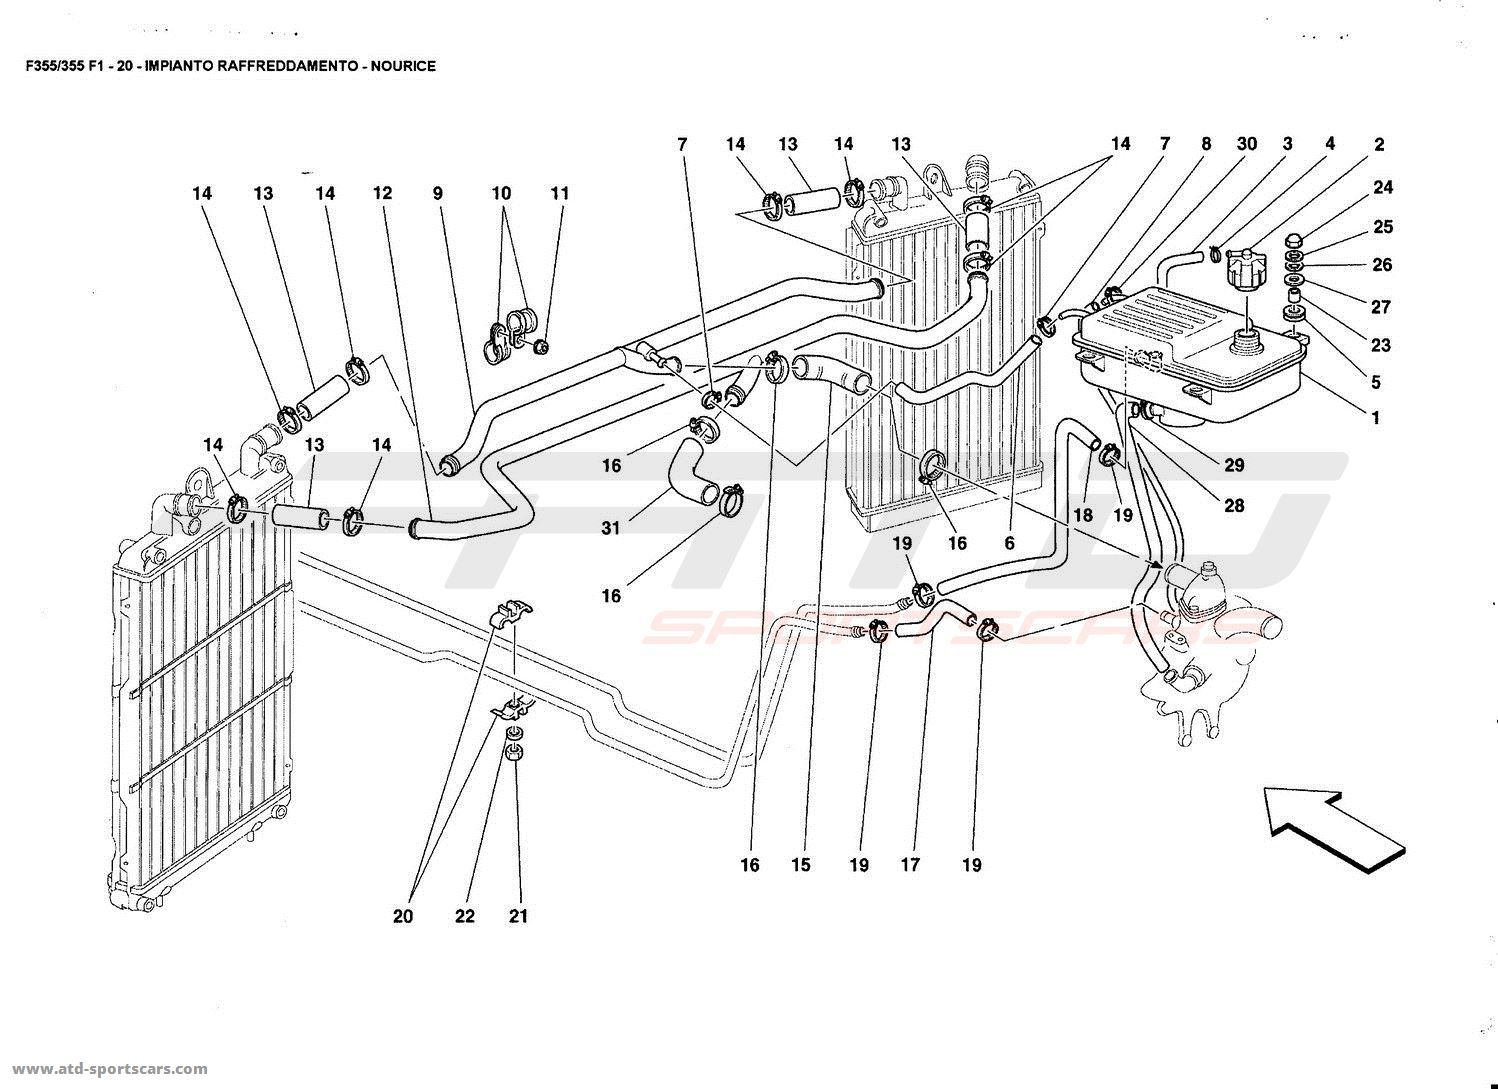 Delonghi Oil Heater Wiring Diagram : 34 Wiring Diagram